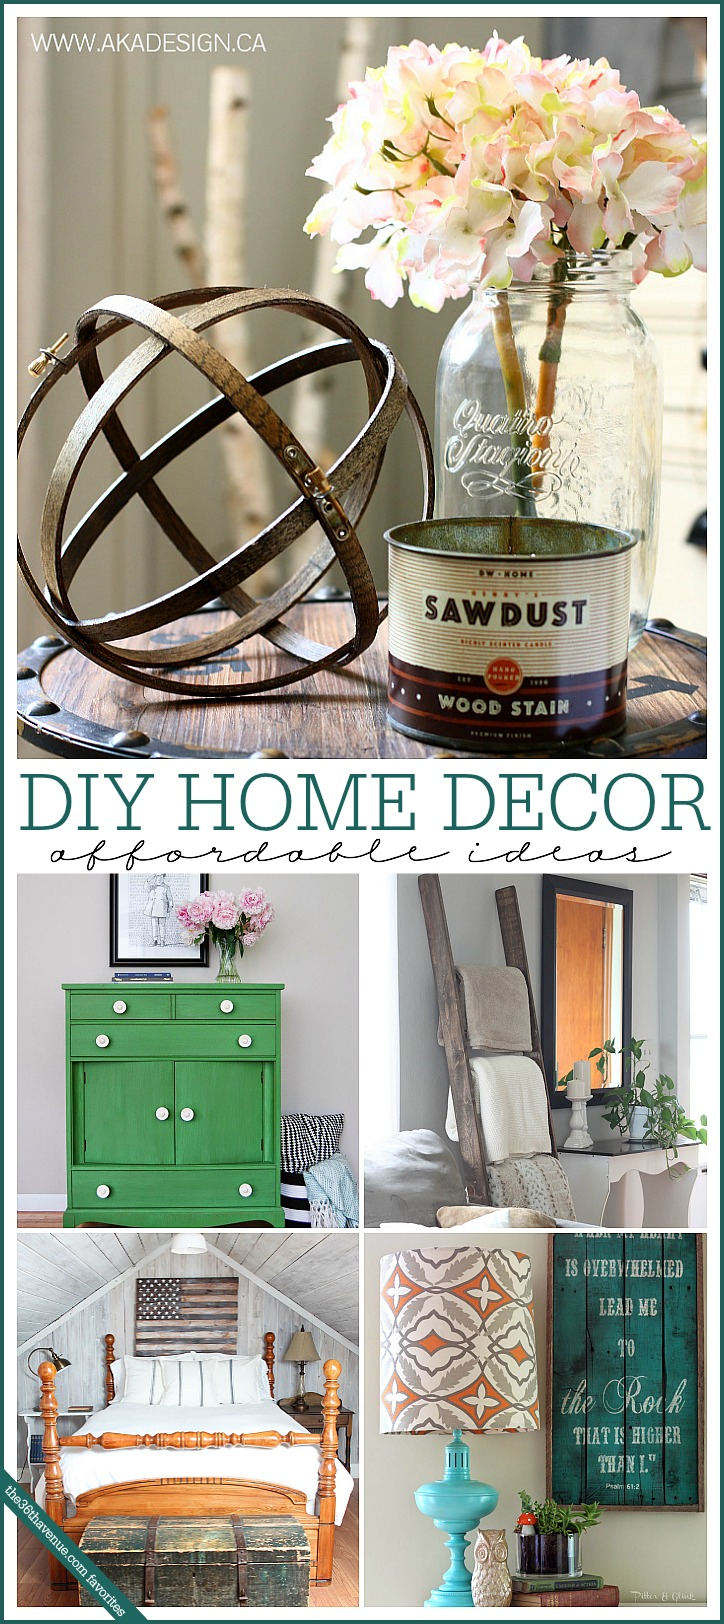 Home decor diy ideas the 36th avenue Home design ideas diy